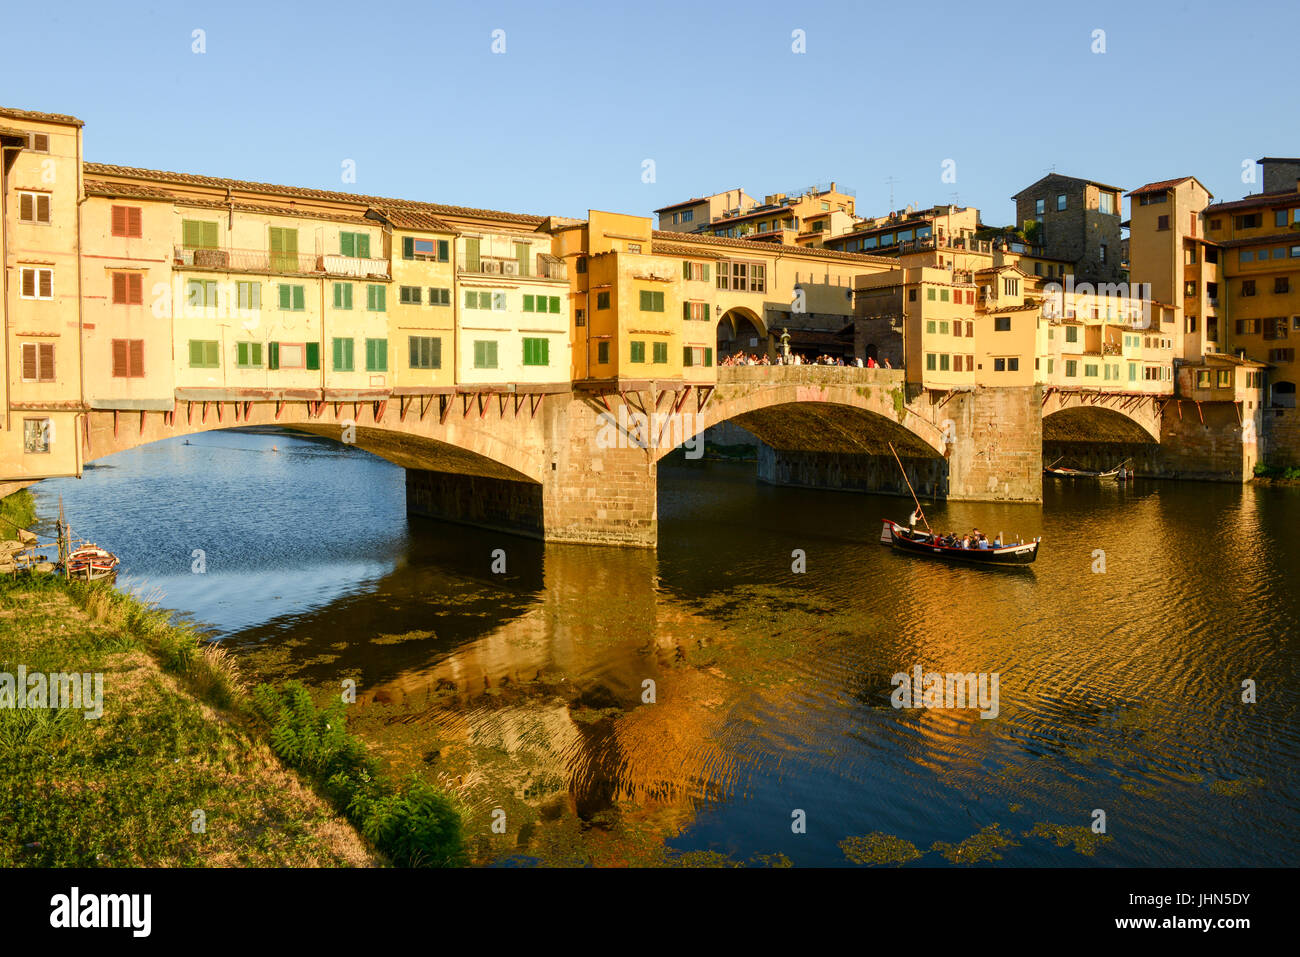 Firenze, Italy - 5 July 2017: Famous bridge of Ponte Vecchio in Florence on Italy. - Stock Image